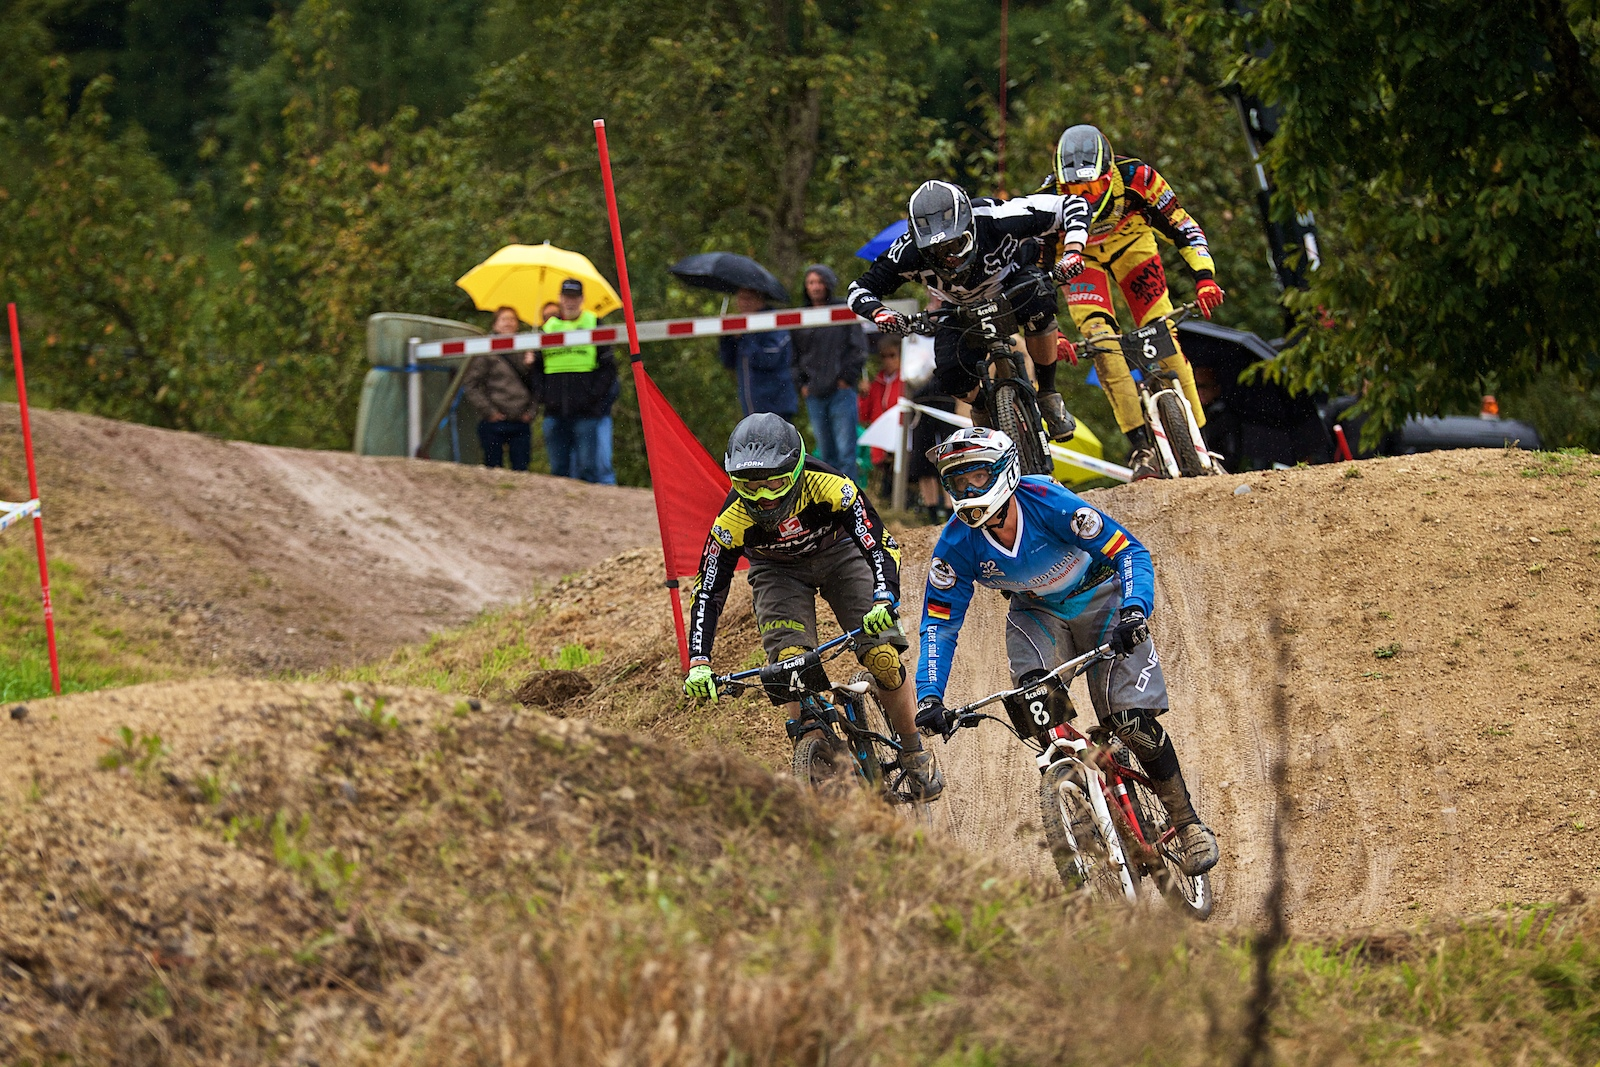 The track in Leibstadt offers a lot of overtaking possibilities - Photographer Valentin Mueller